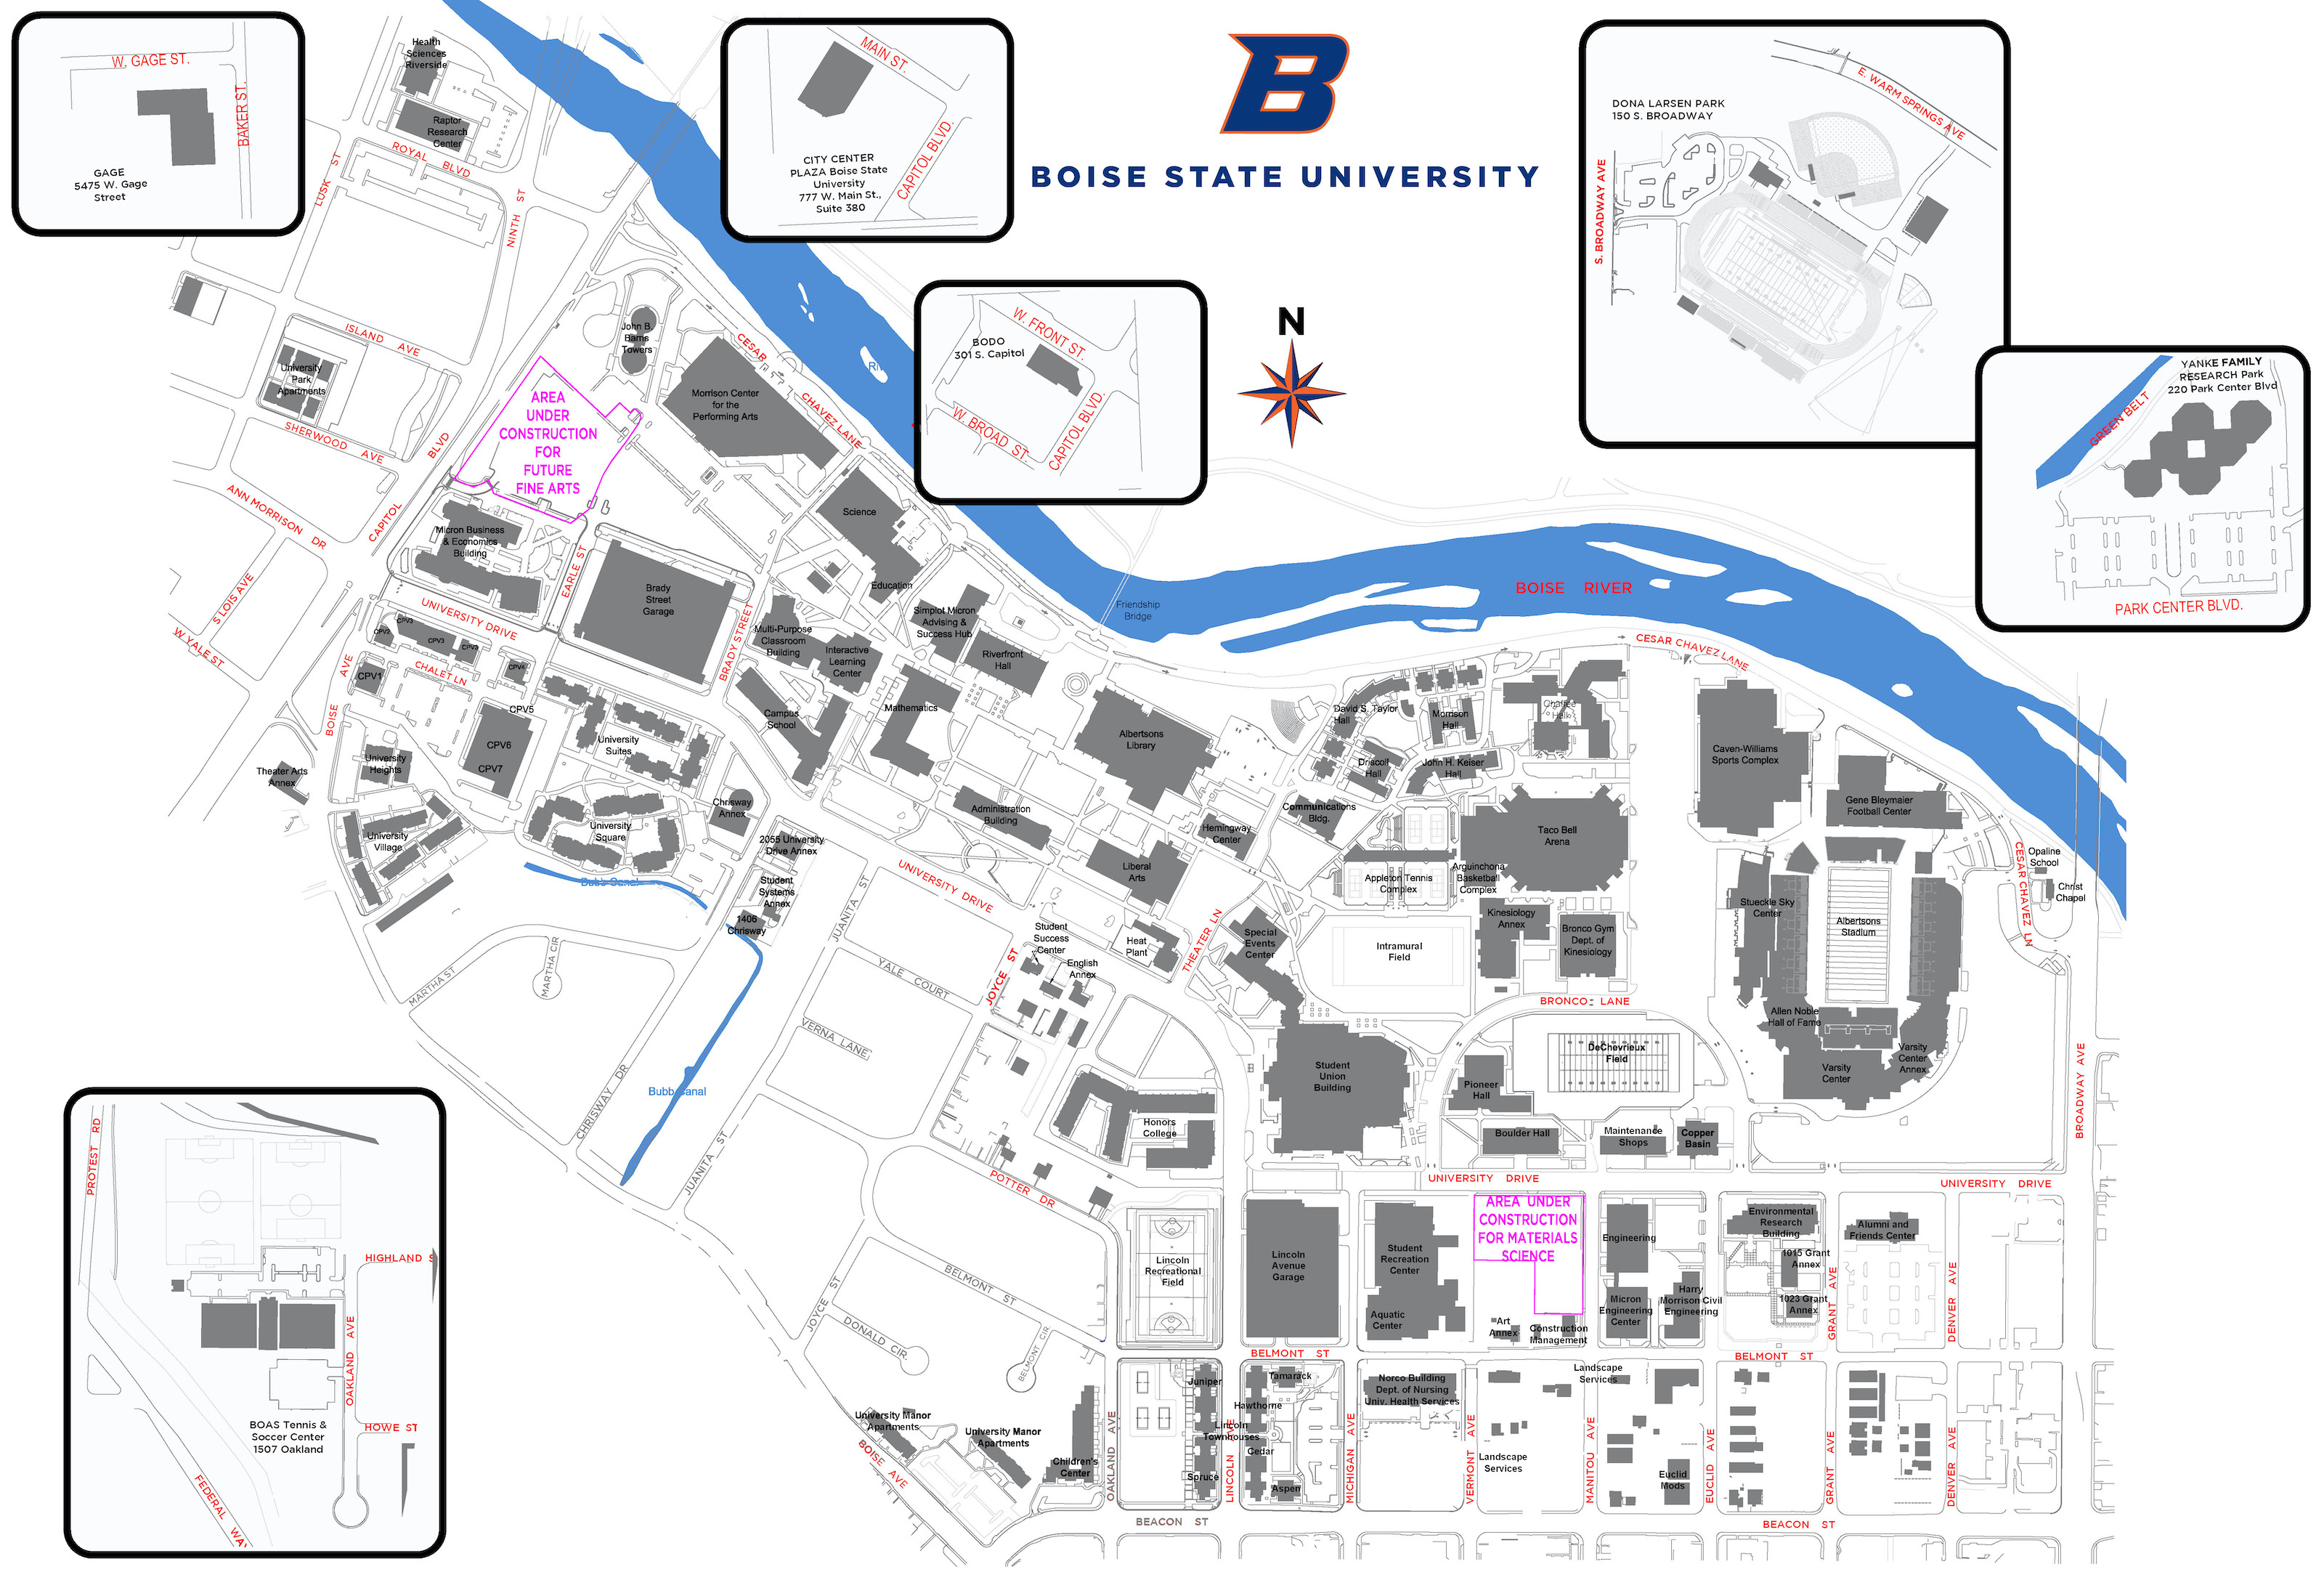 bsu map of campus Campus Master Plan And Maps Campus Operations bsu map of campus